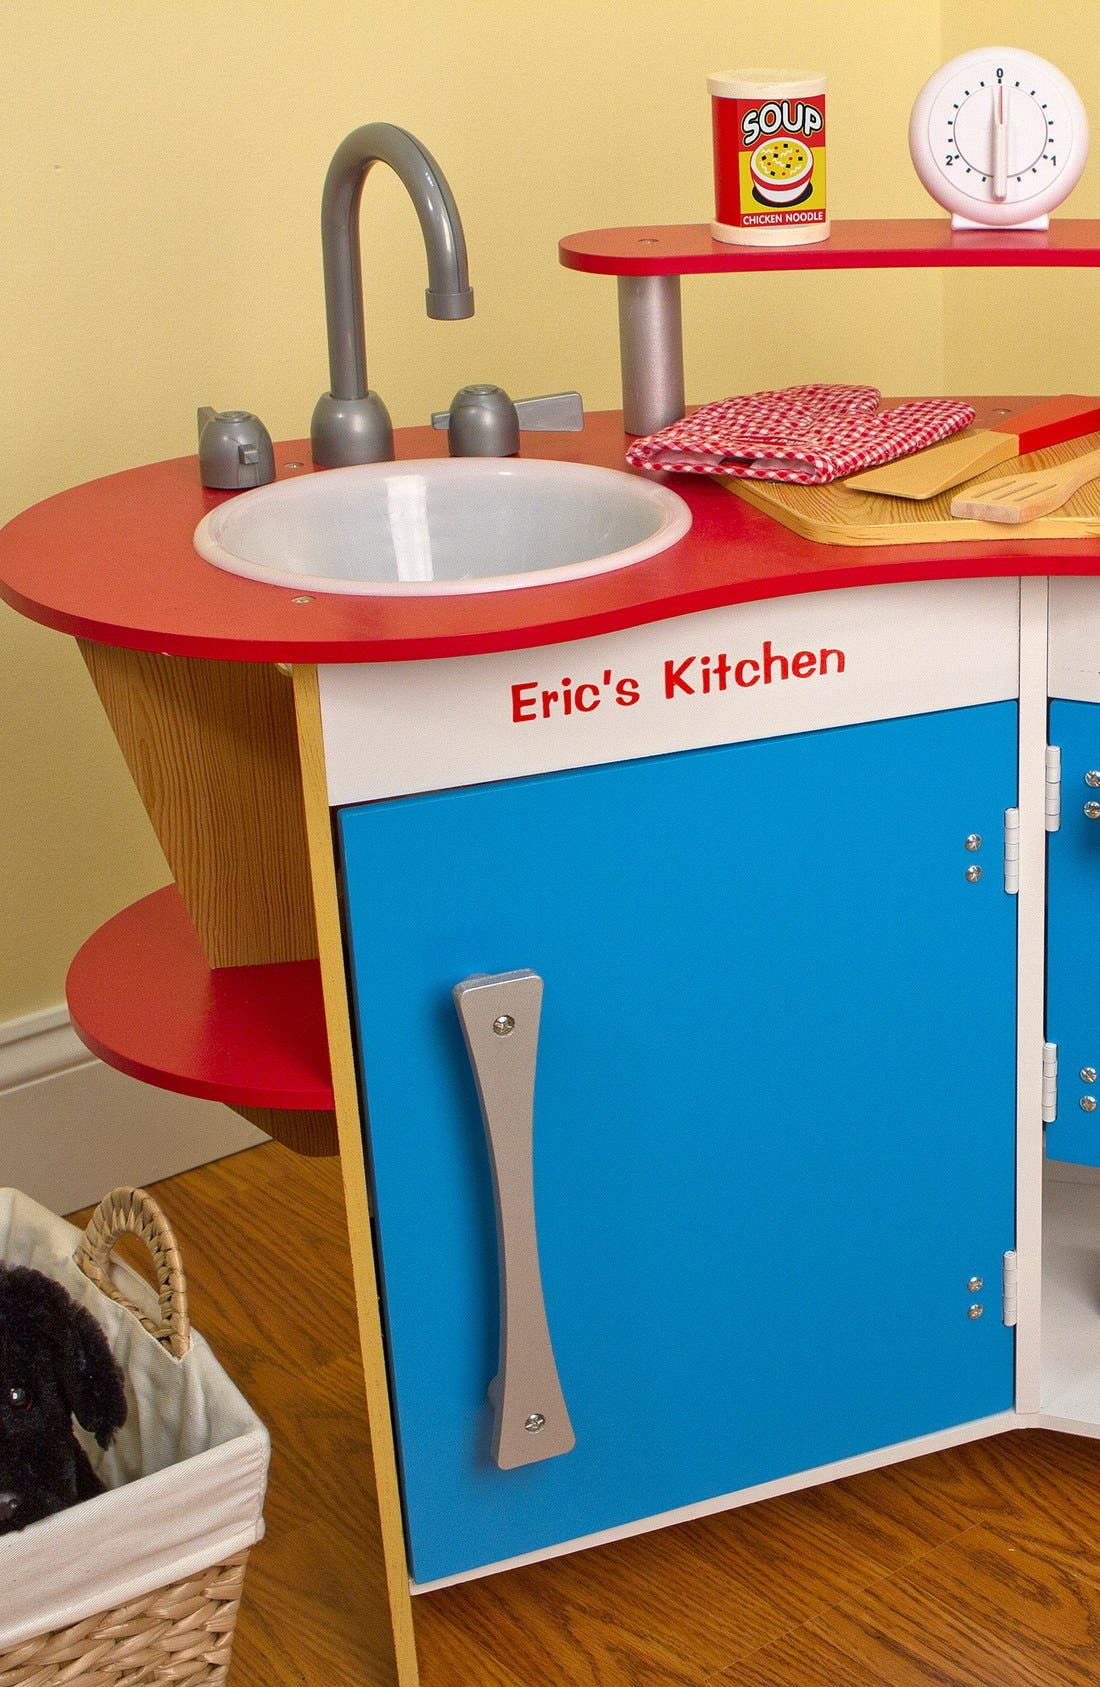 'Cook's Corner' Personalized Kitchen,                             Main thumbnail 1, color,                             600